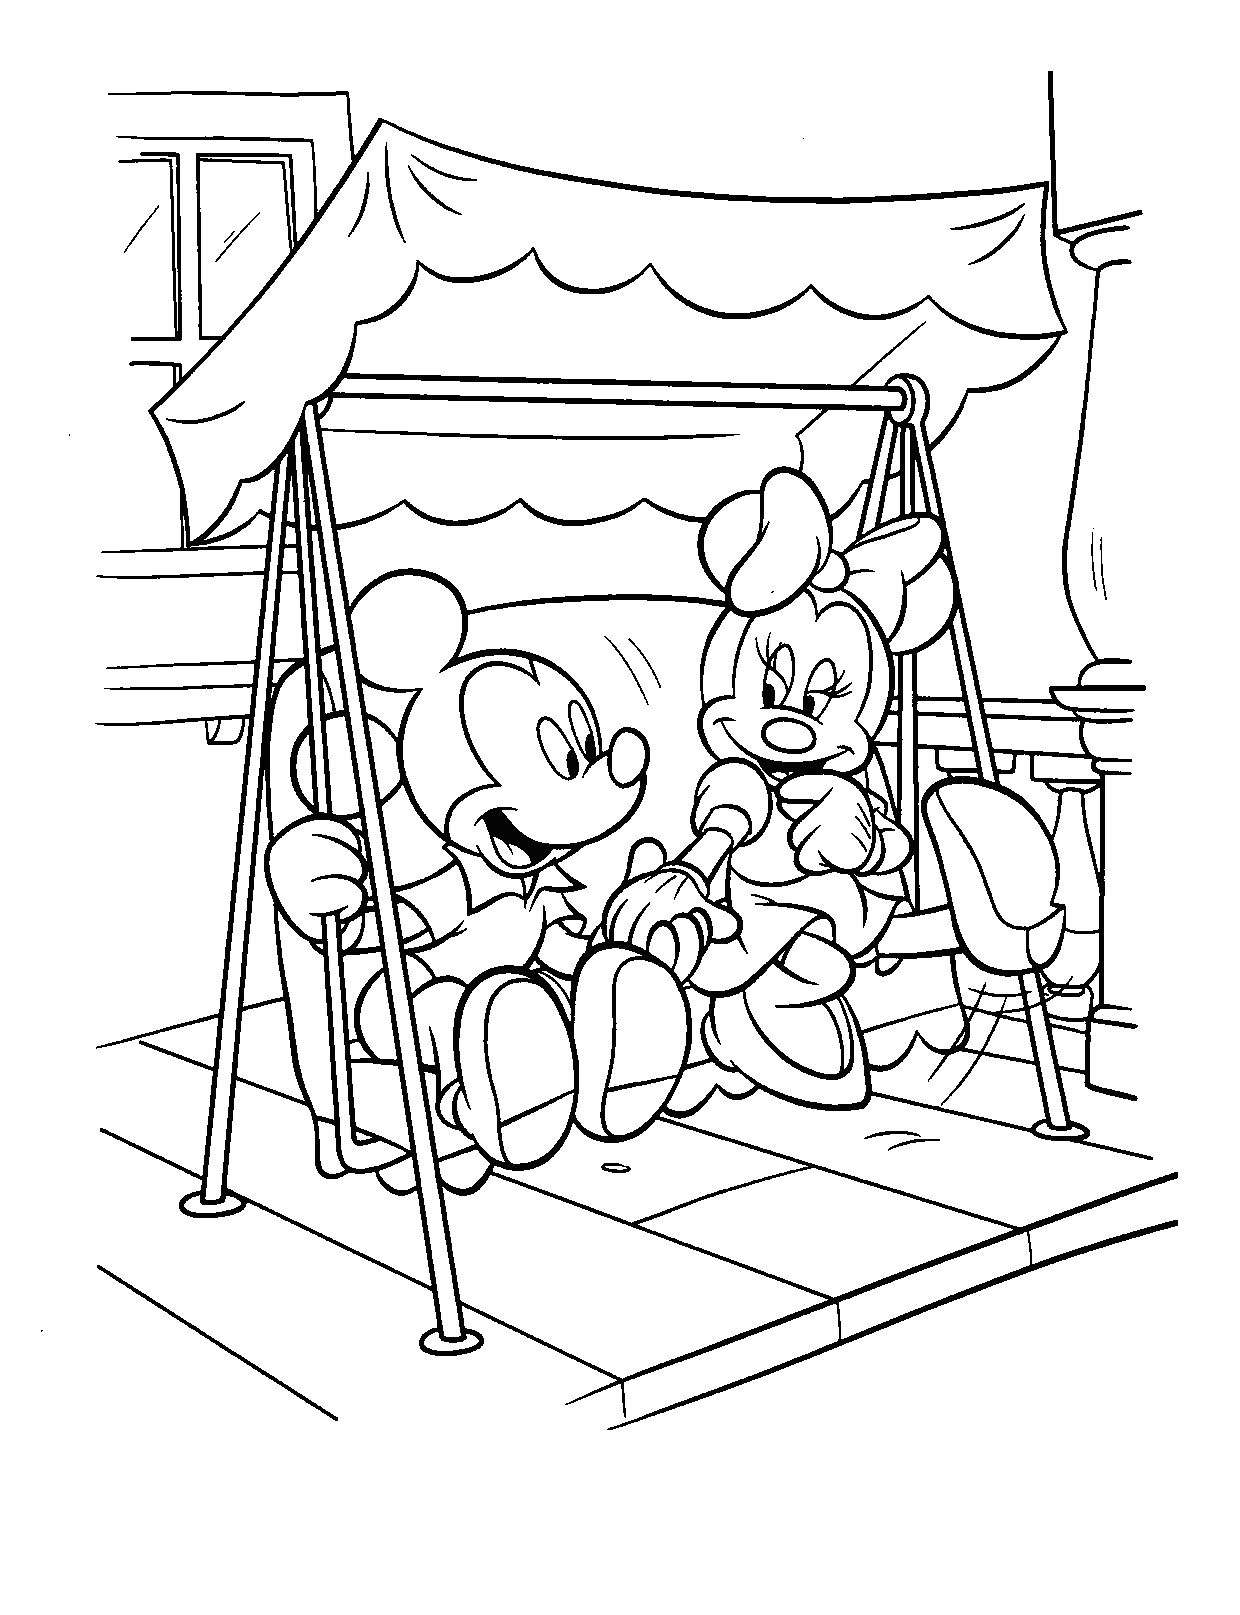 free printable minnie mouse coloring pages for kids